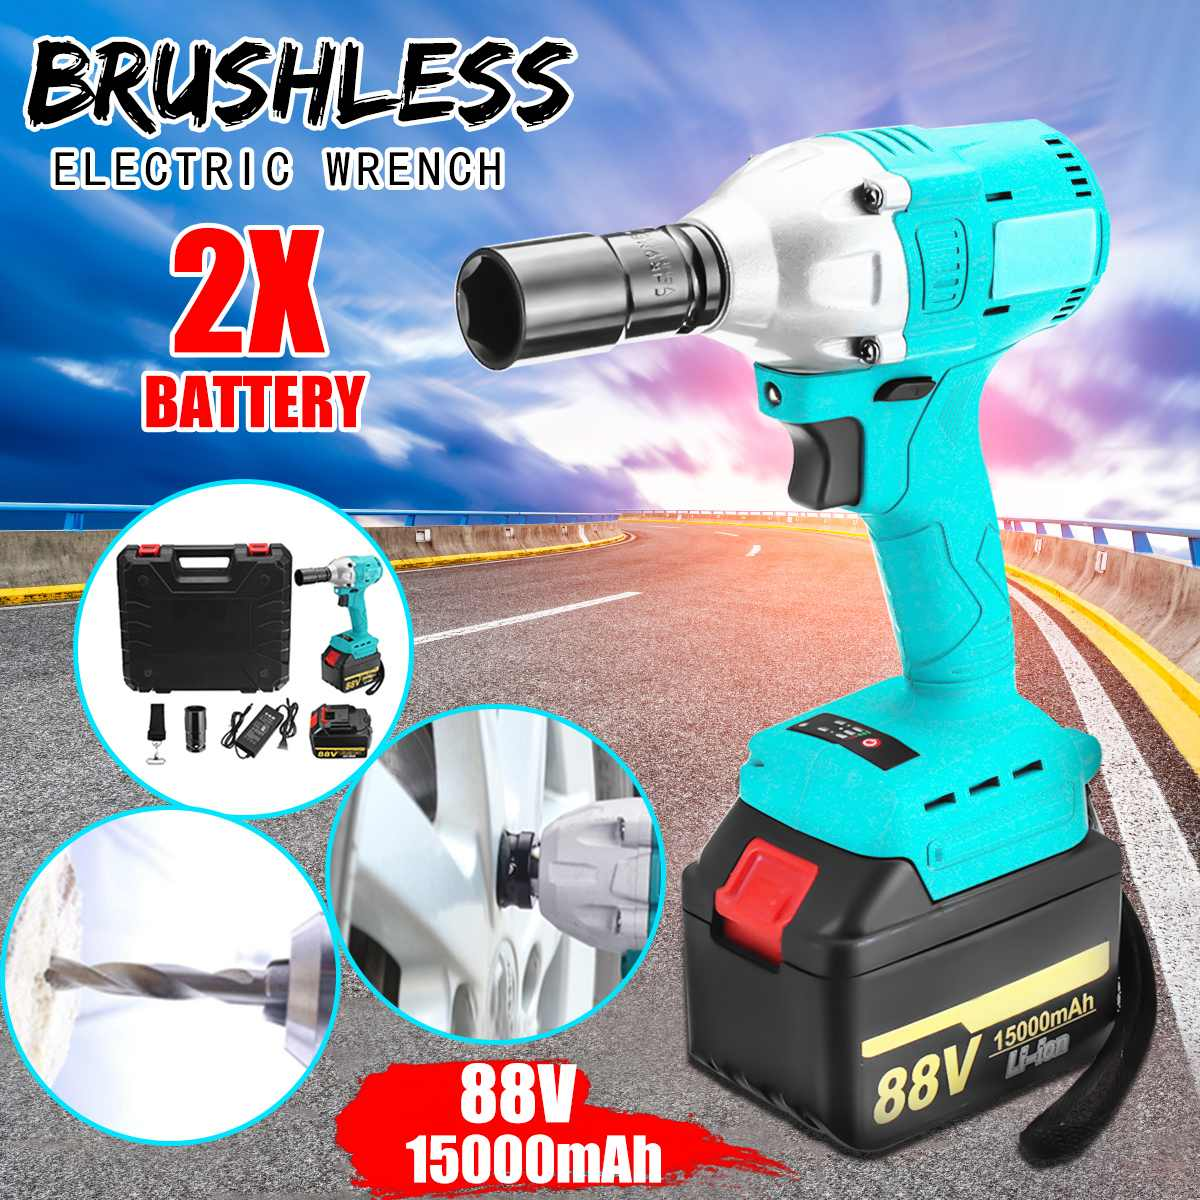 88V 15000mAh Battery Brushless Electric Wrench Dual Speed Impact Wrench Cordless Rechargeable Electric Impact Drill Power Tools electric impact wrench 98 128 168 188vf electric brushless li ion battery wrench 10mm chuk with box cordless speed control power